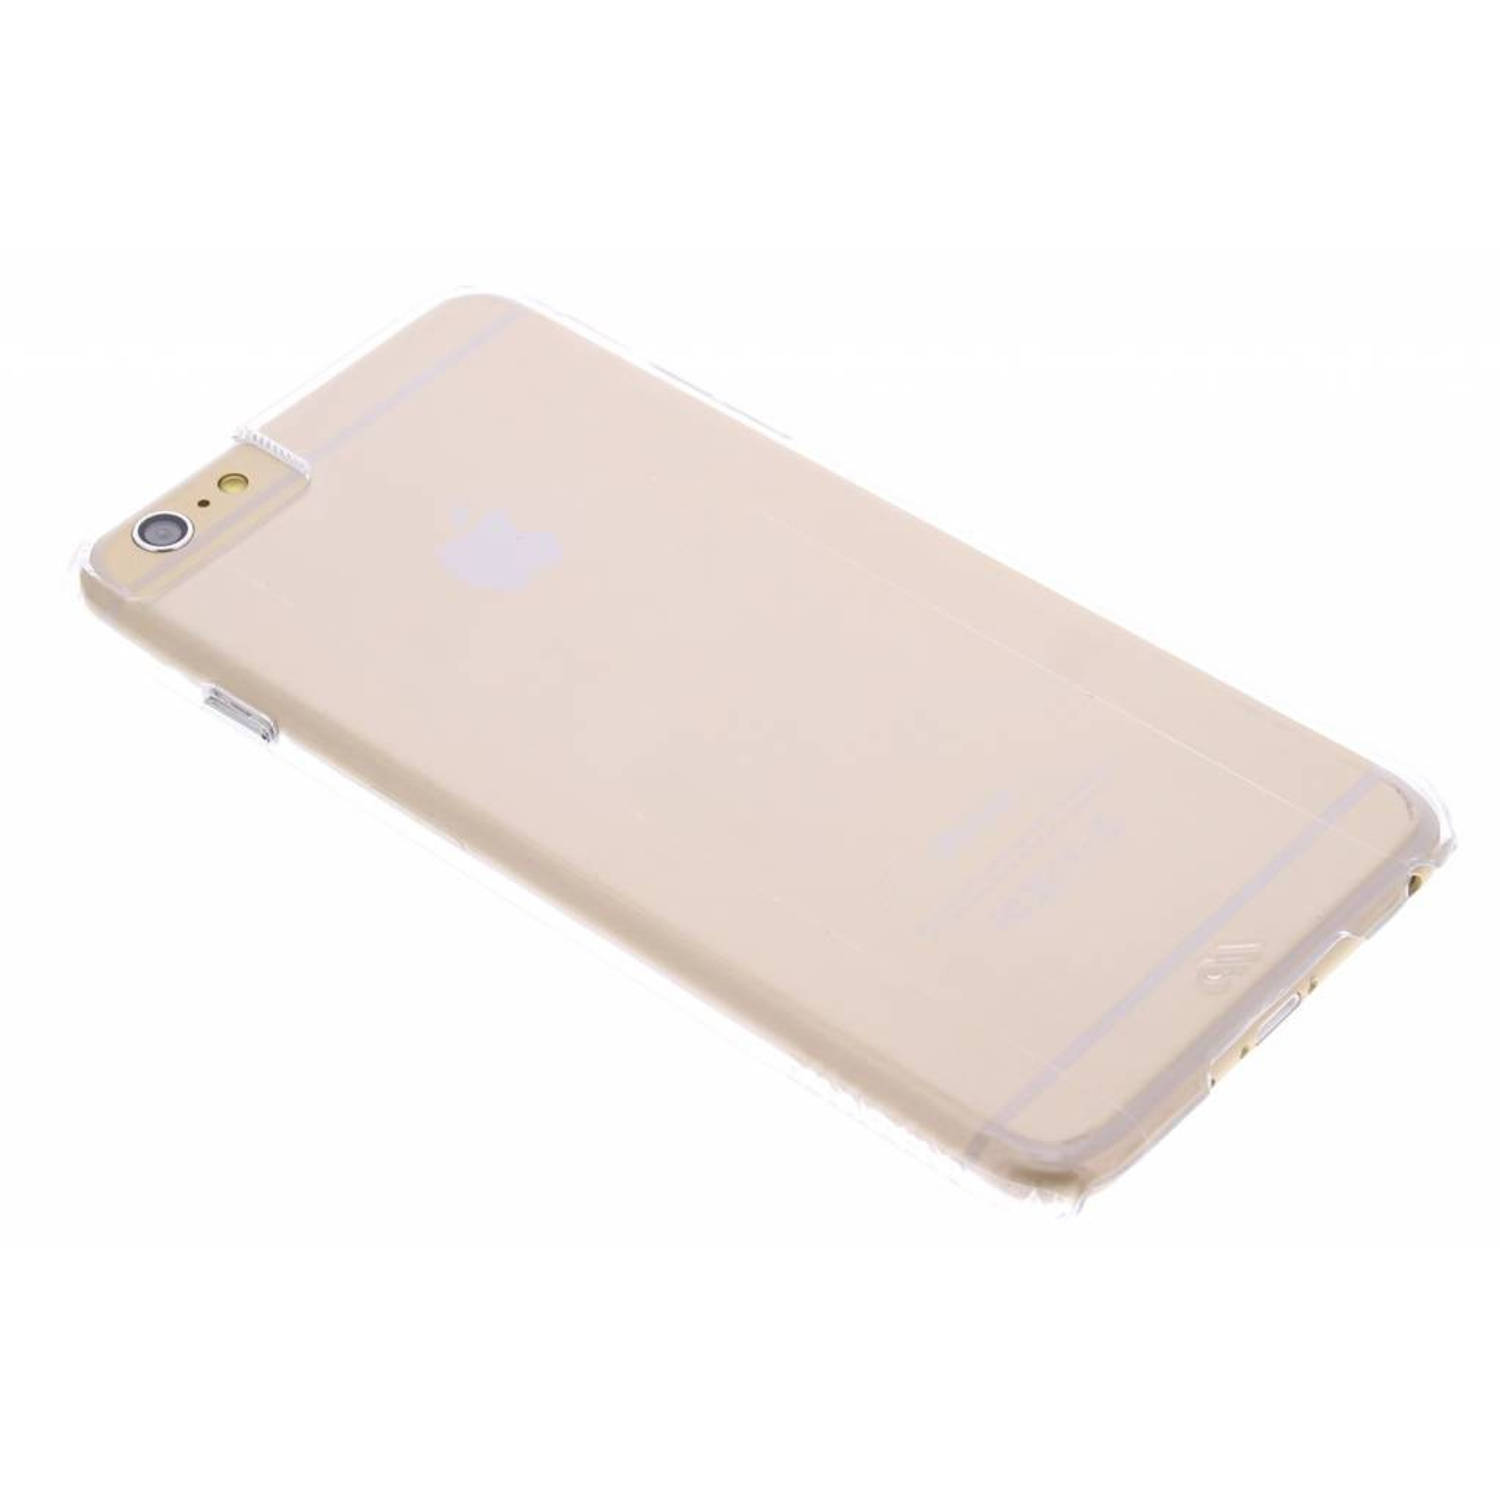 Barely There hardcase hoesje voor de iPhone 6(s) Plus - Transparant